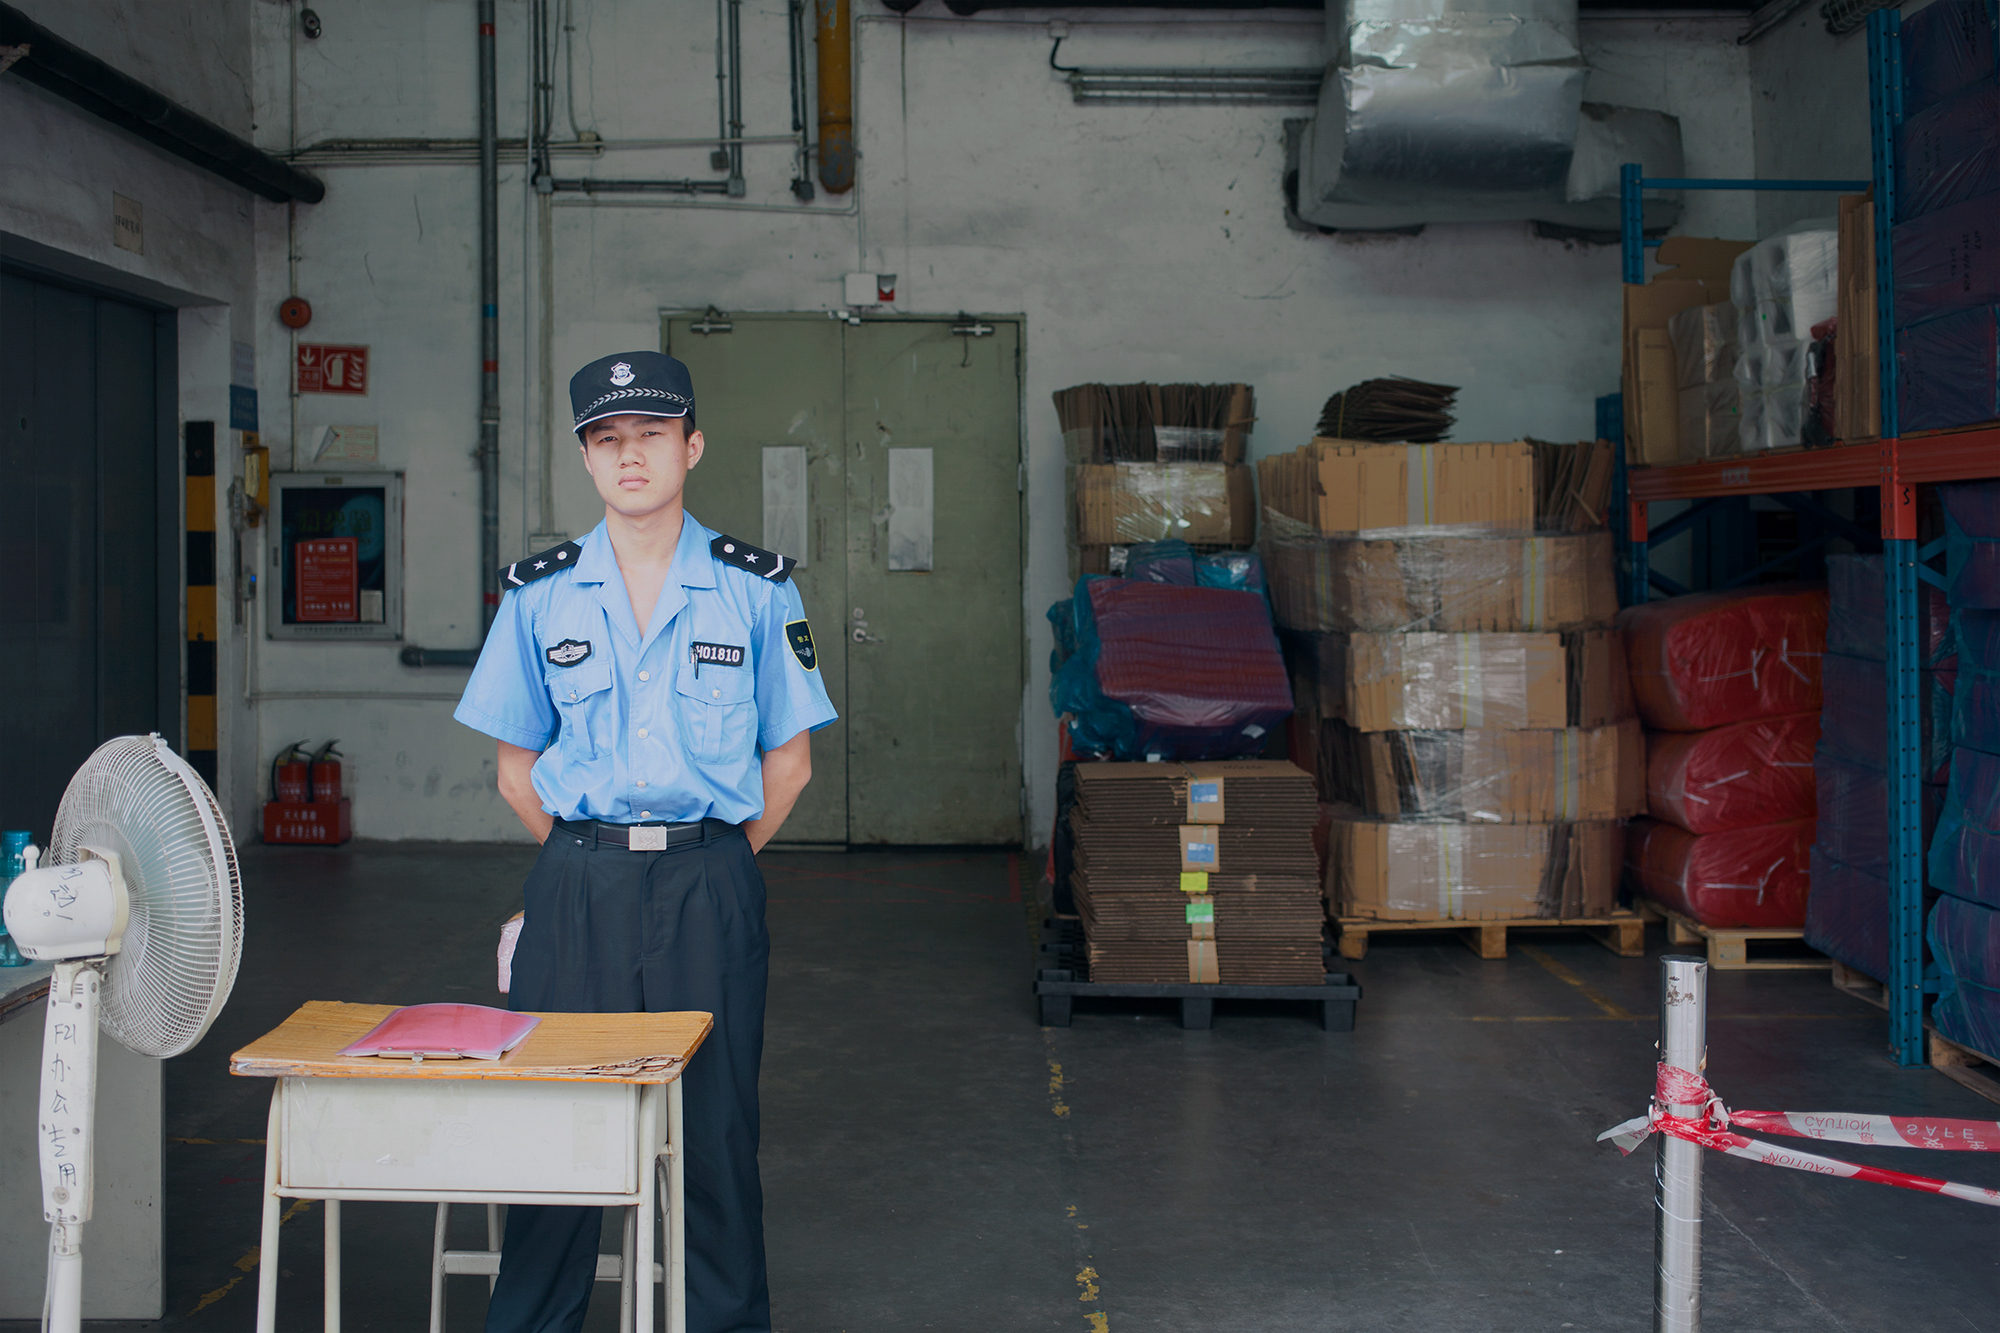 A security guard at Foxconn, Shenzhen, China, 2016.